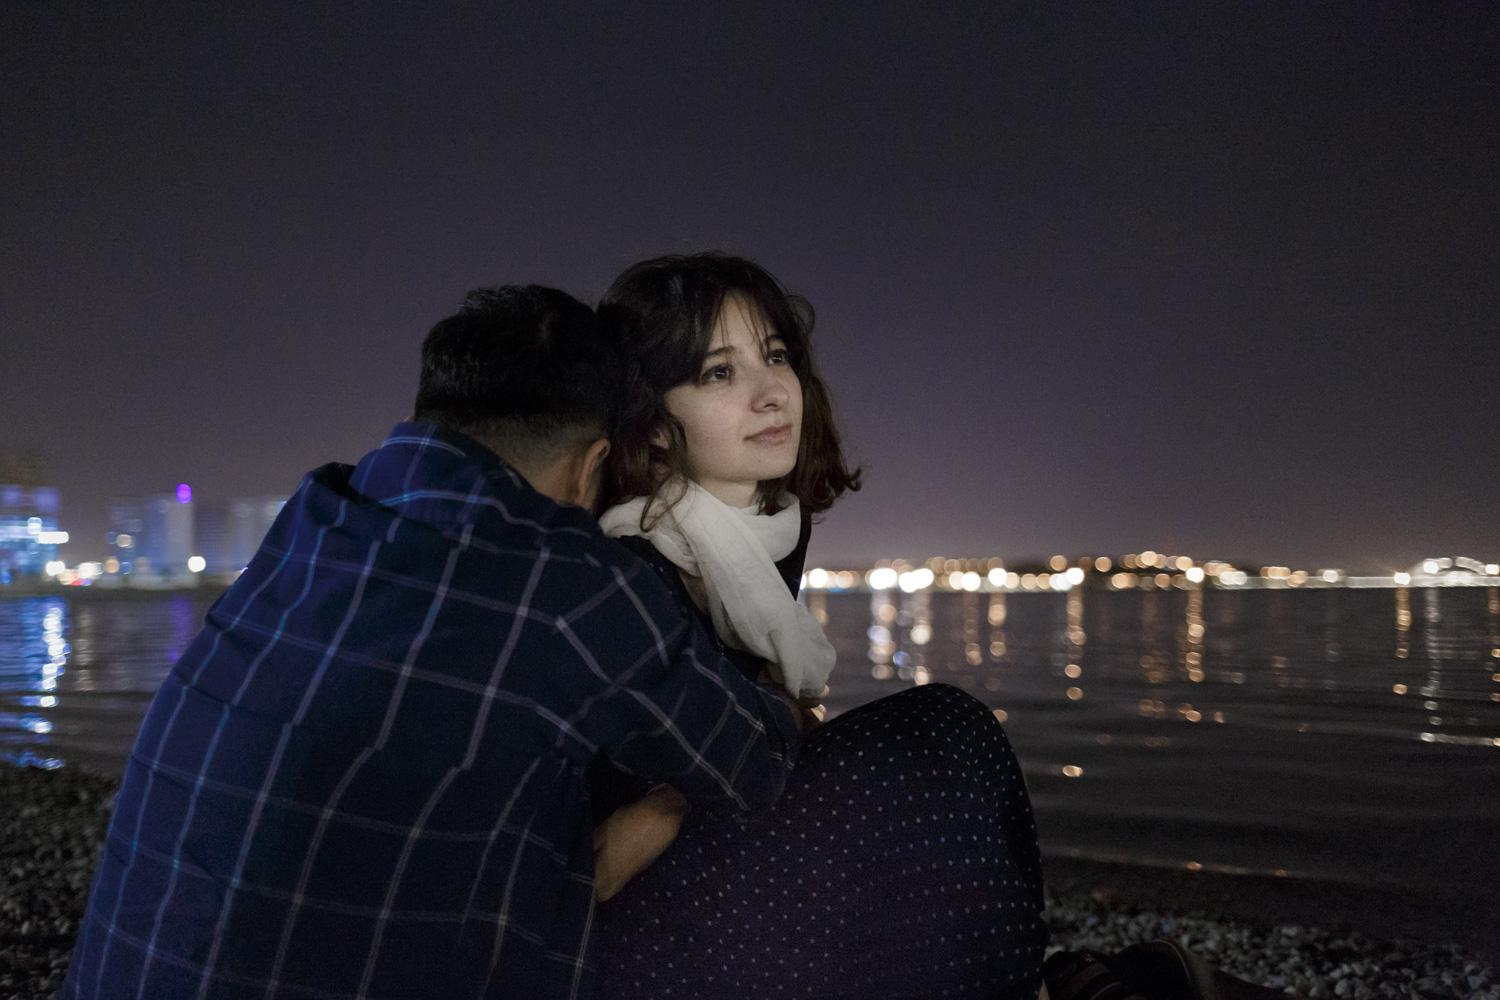 Yasamin (22) spends her evening with her boyfriend by an artificial lake in western Tehran. Almost a decade ago, relationships between unmarried women and men were a taboo among the majority of Iranians. Back then, couples could be arrested by the morality police for their relationship. Nowadays having a girl- or boyfriend is much more accepted in the Iranian society.